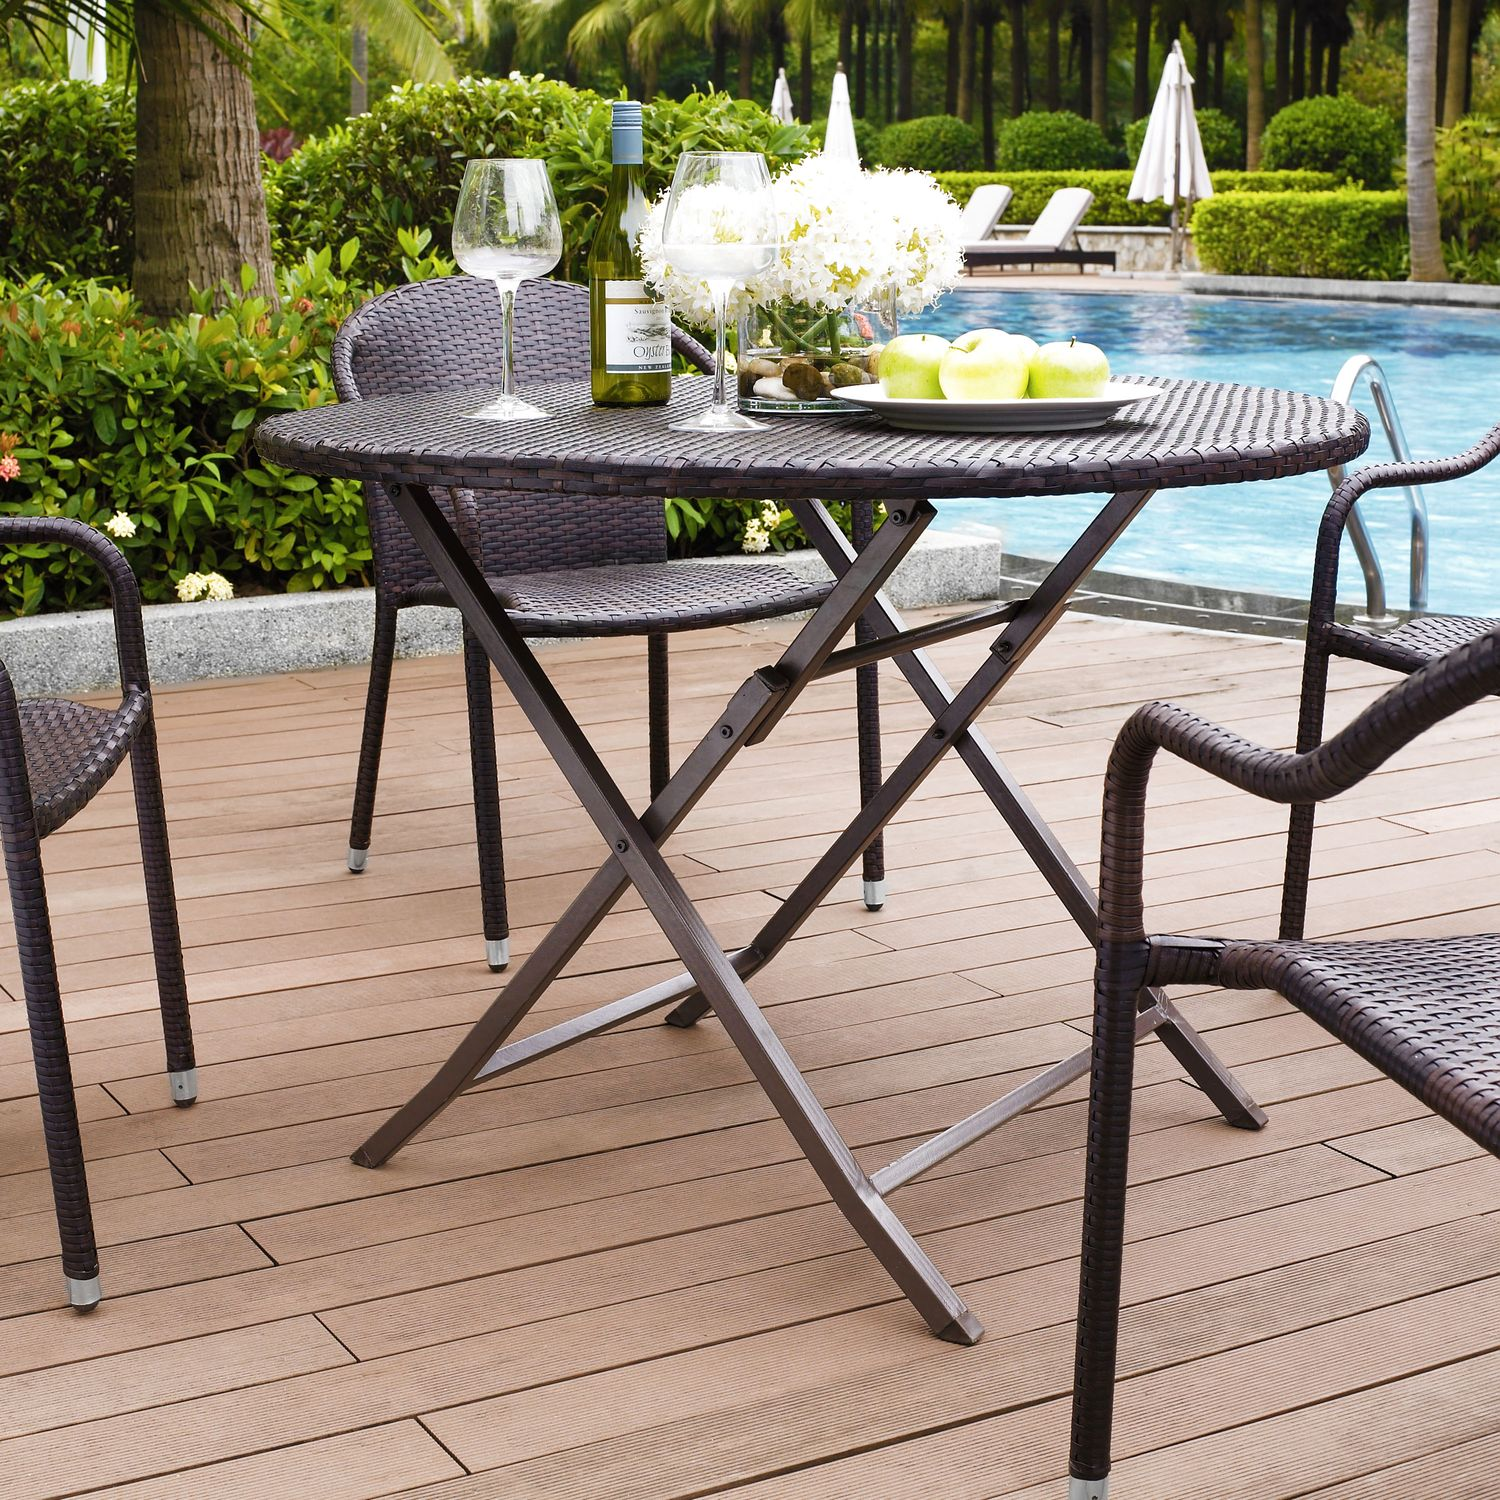 patio mesh item com set backyard pcs furniture group alibaba chair outdoor garden aliexpress steel table on from in chairs folding